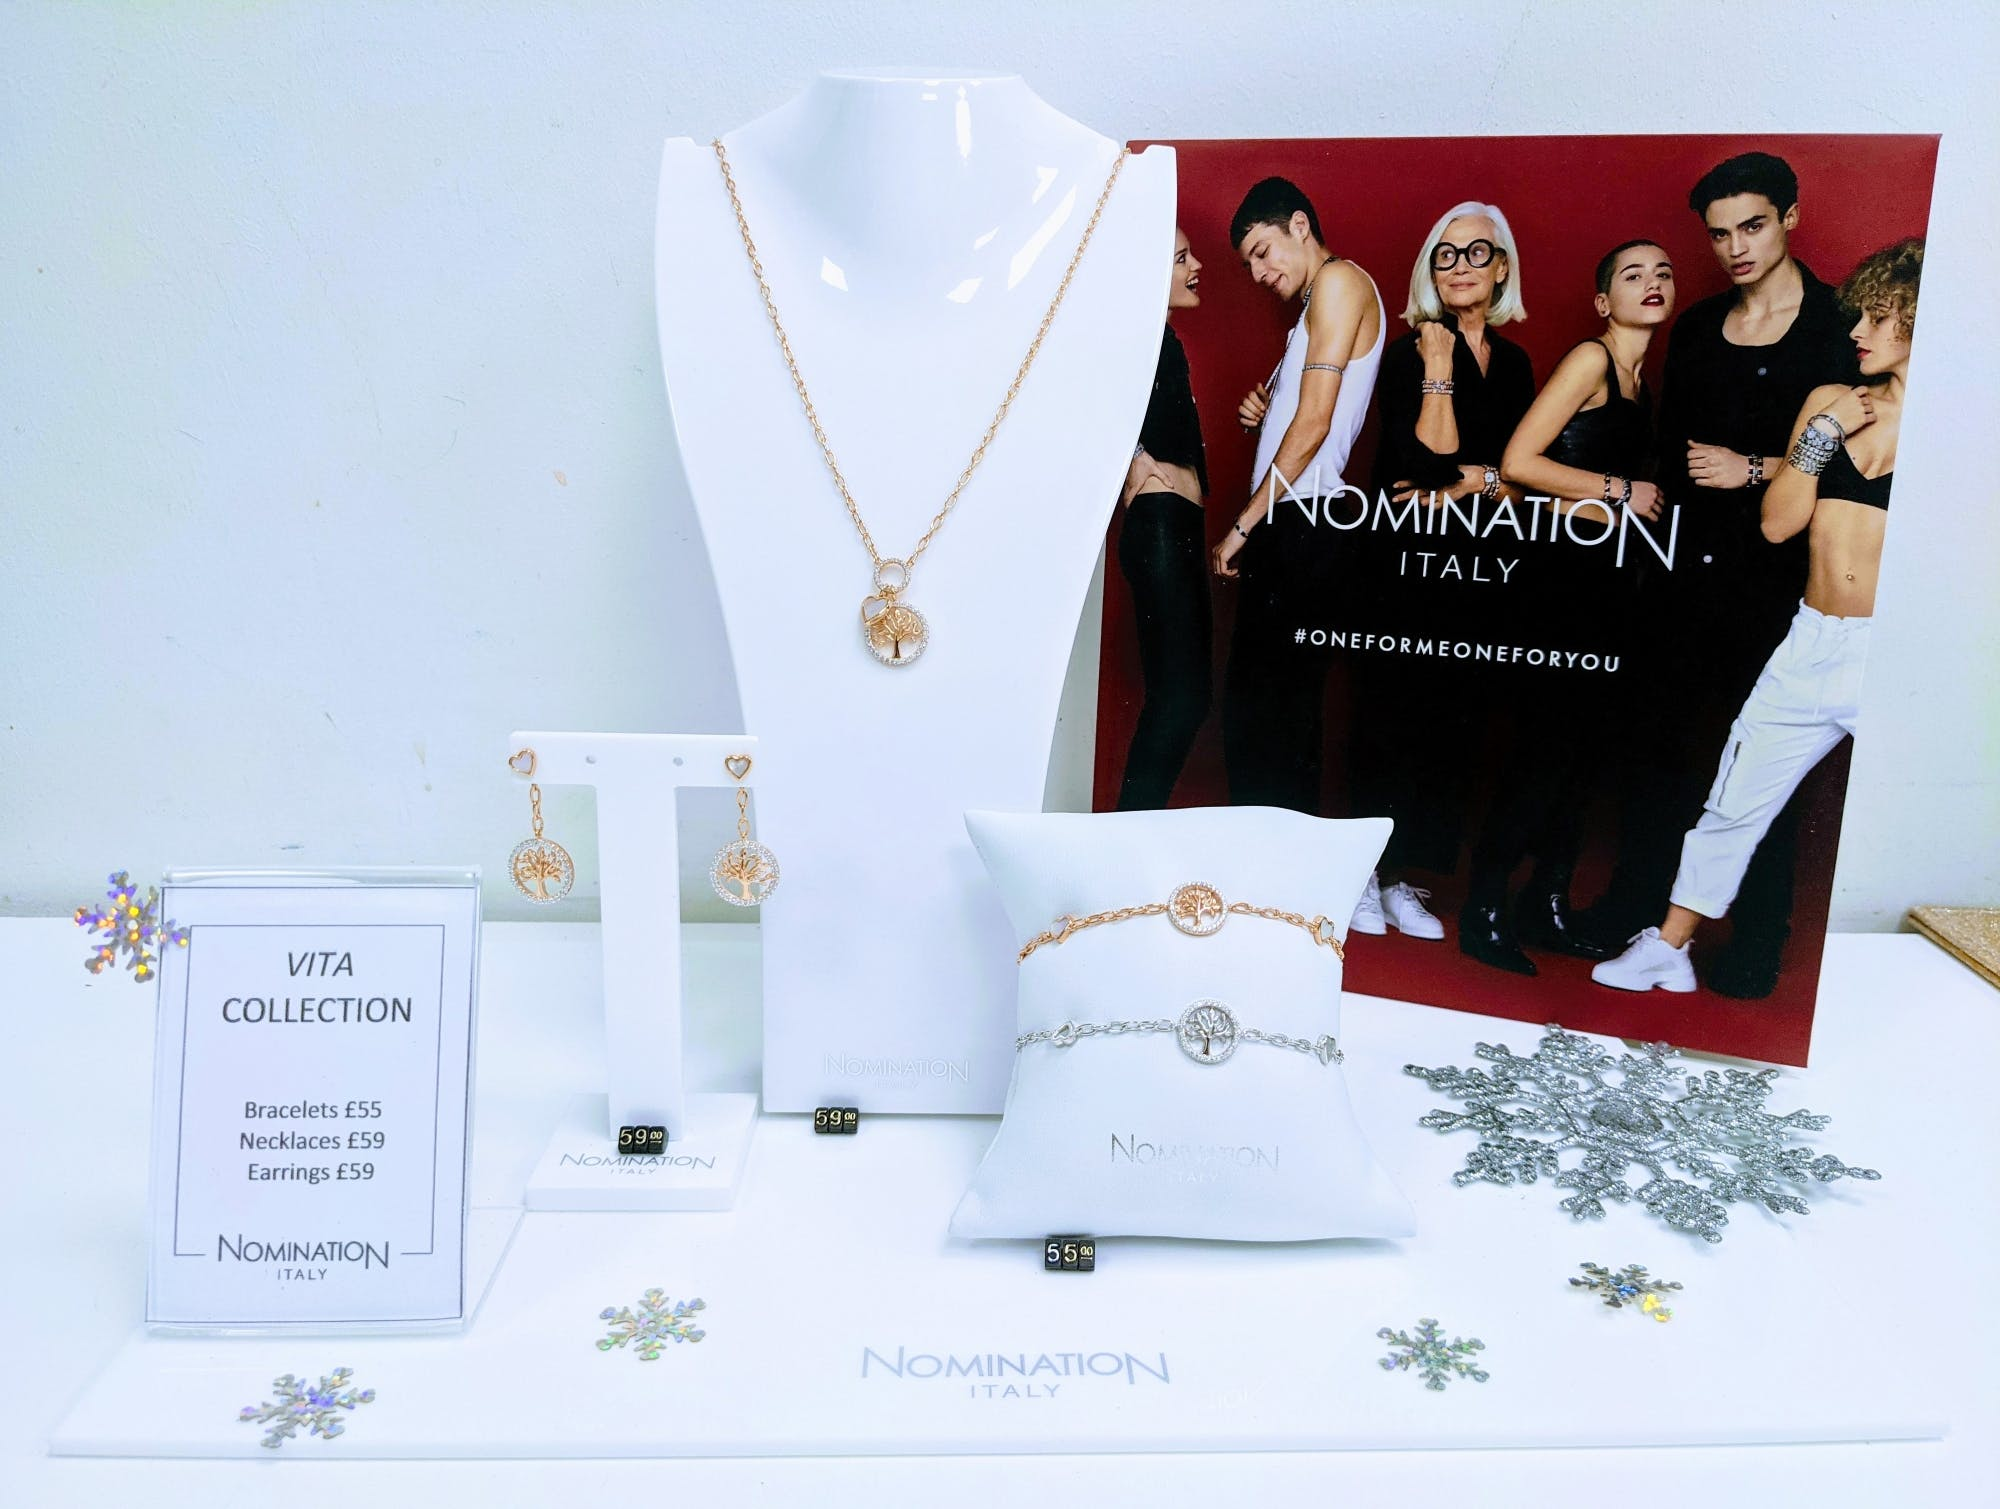 Trending this Christmas at Nomination is the Vita necklace with Mother of Pearl heart. Sterling silver necklaces come with rhodium or 22ct rose gold plating in Tree of Life or Heart design. Perfect for the ladies in your life. £59.